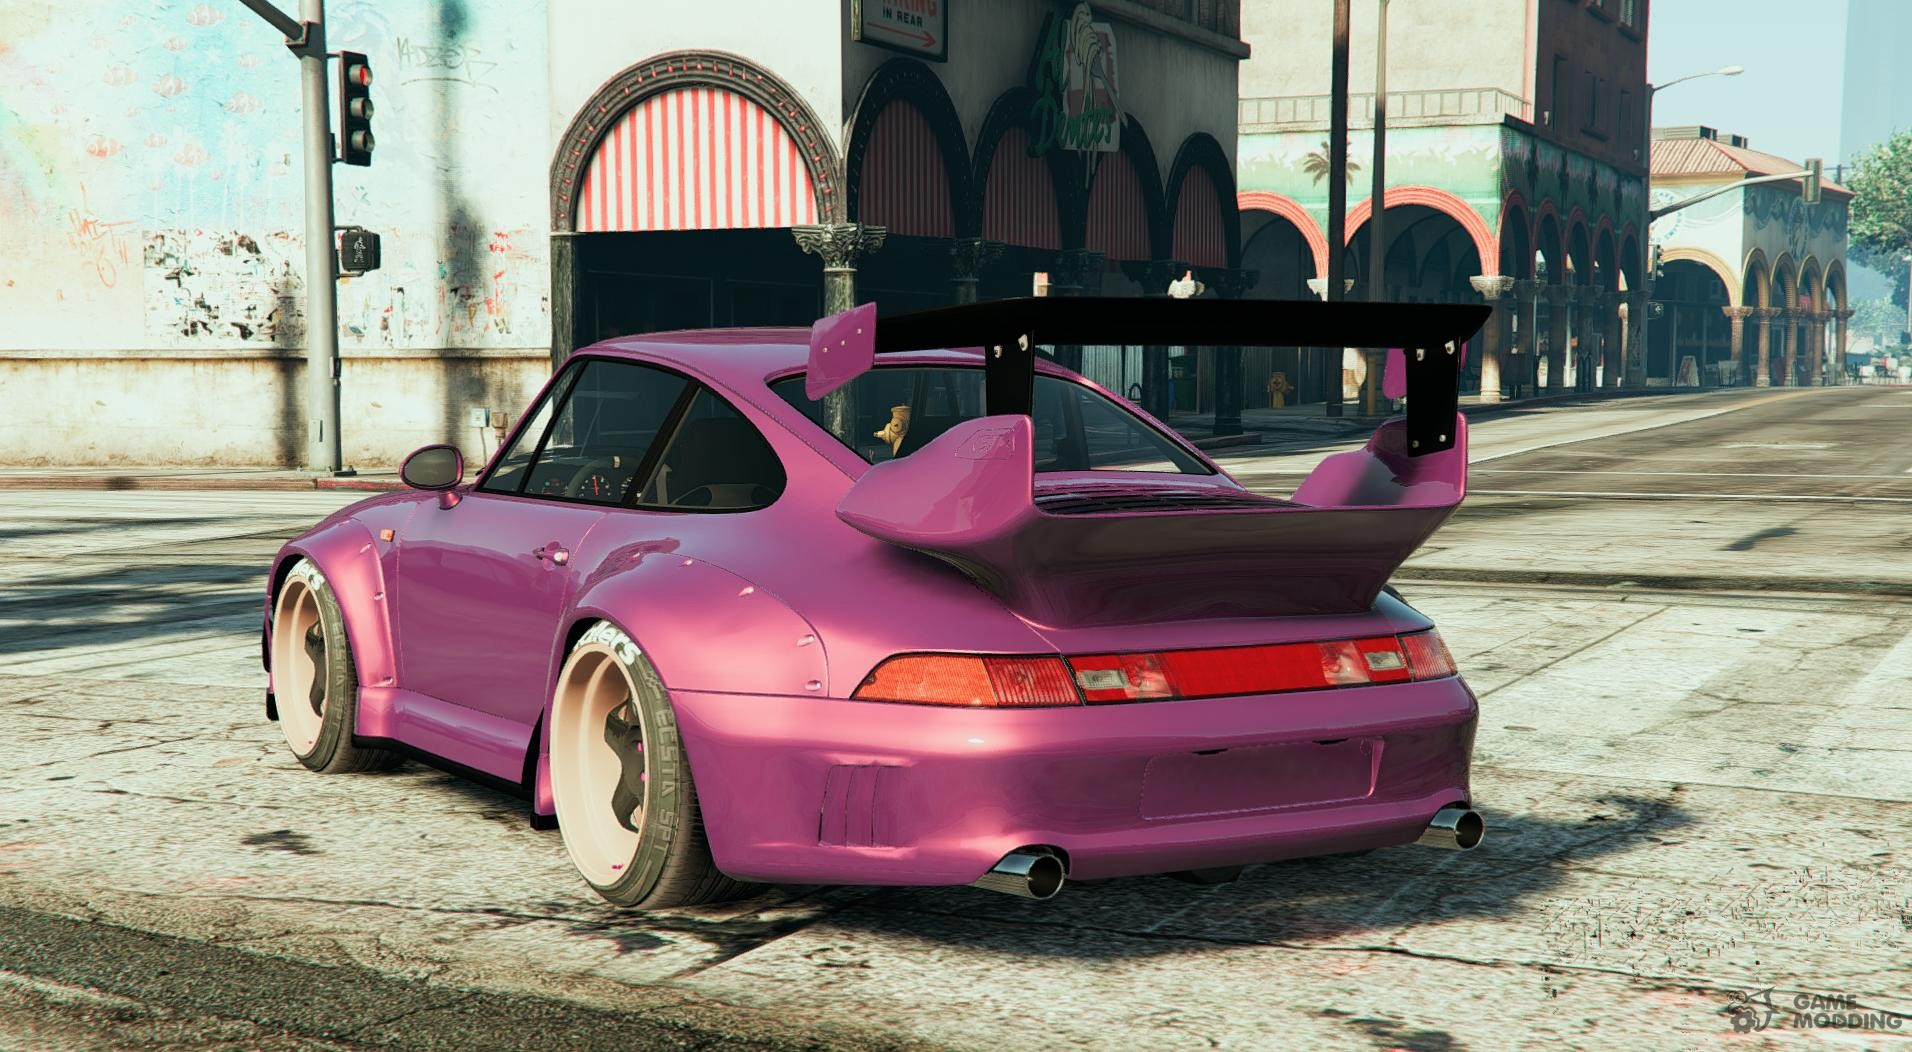 6c2fa37cec43e5d9513a35ee55184014fc432135a0e6de36455fa64ffad36191 Remarkable Porsche 911 Gt2 Xbox 360 Cars Trend